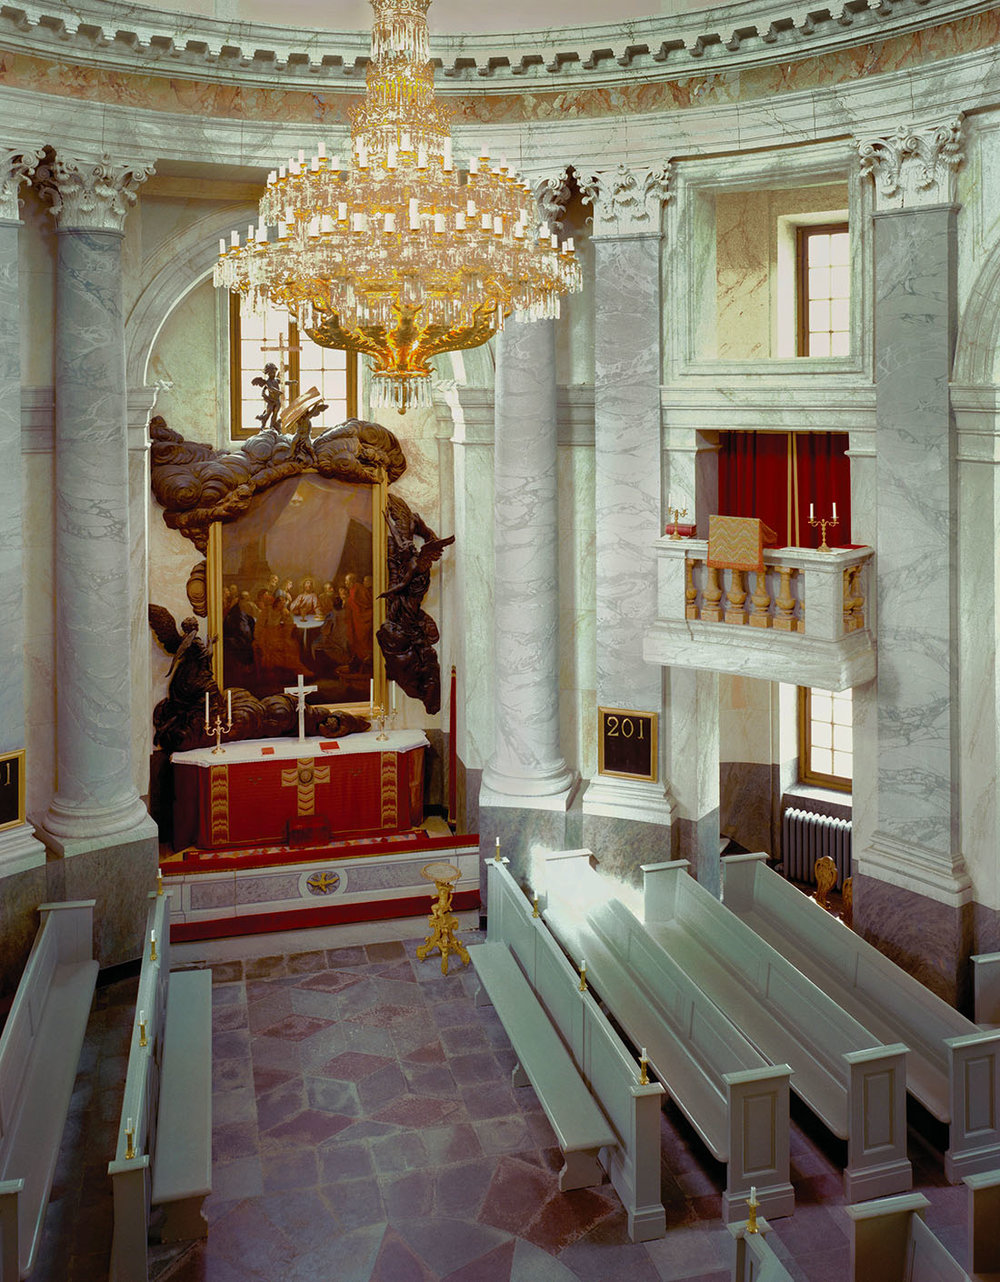 The palace chapel is still used today for royal christenings. Photo courtesy of Swedish Royal Court